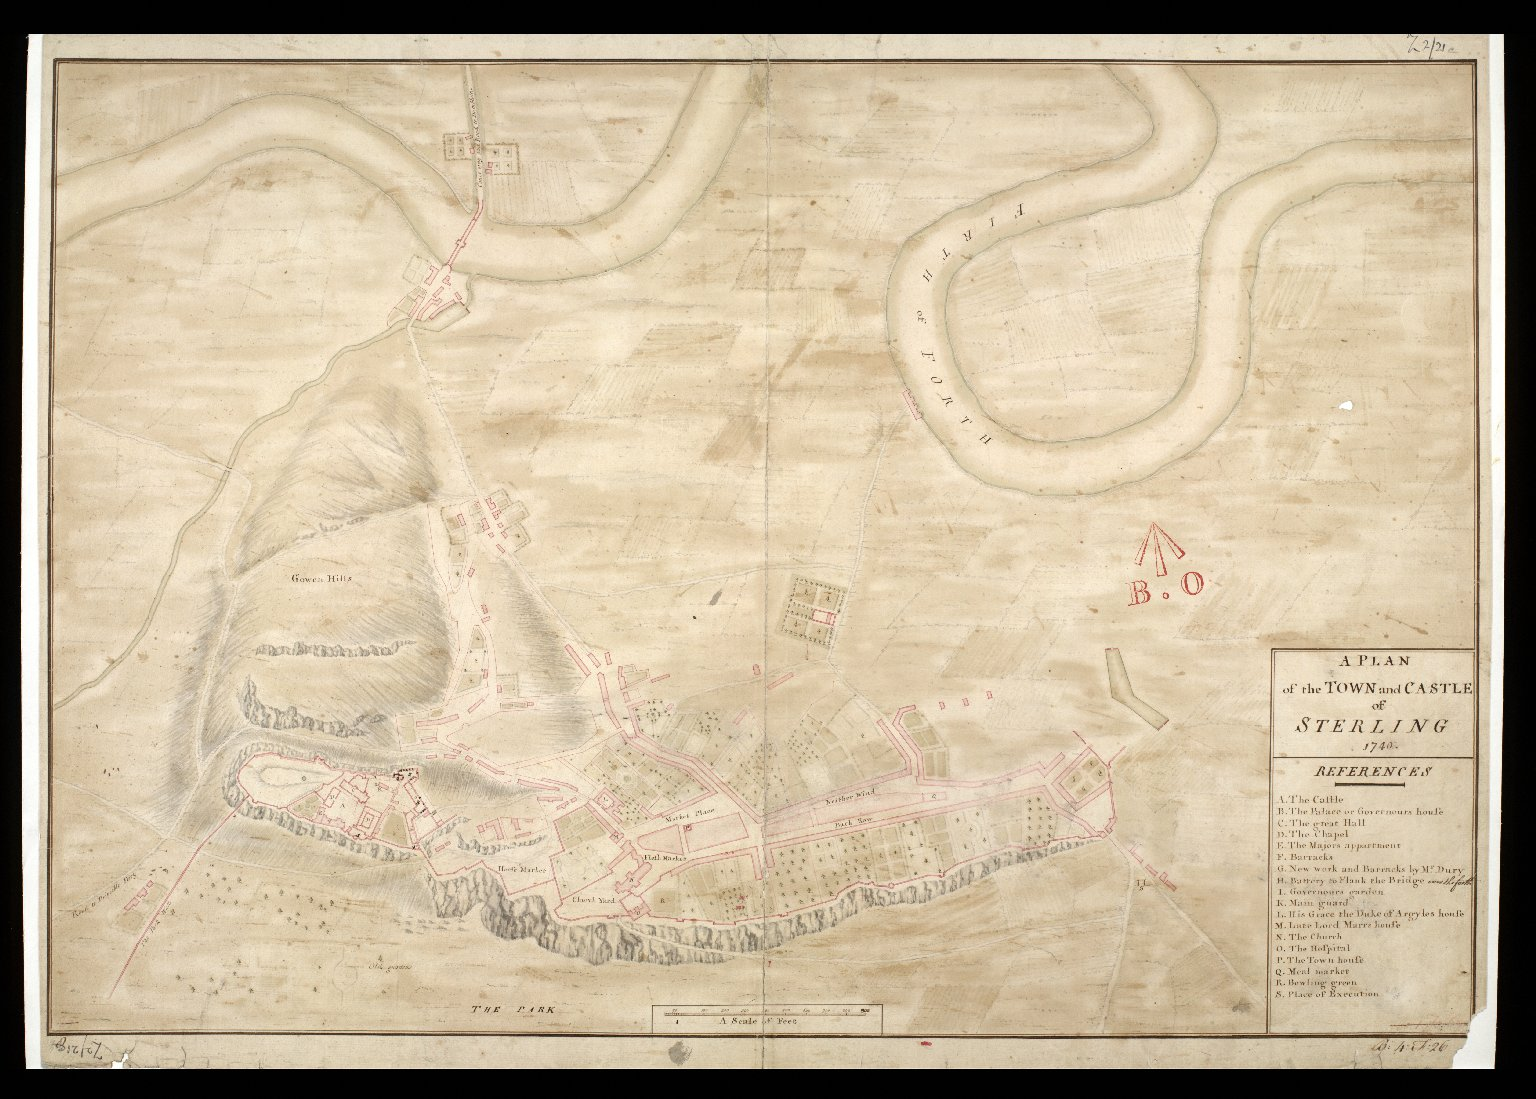 A Plan of the town and castle of Sterling [i.e. Stirling] 1740. [1 of 1]